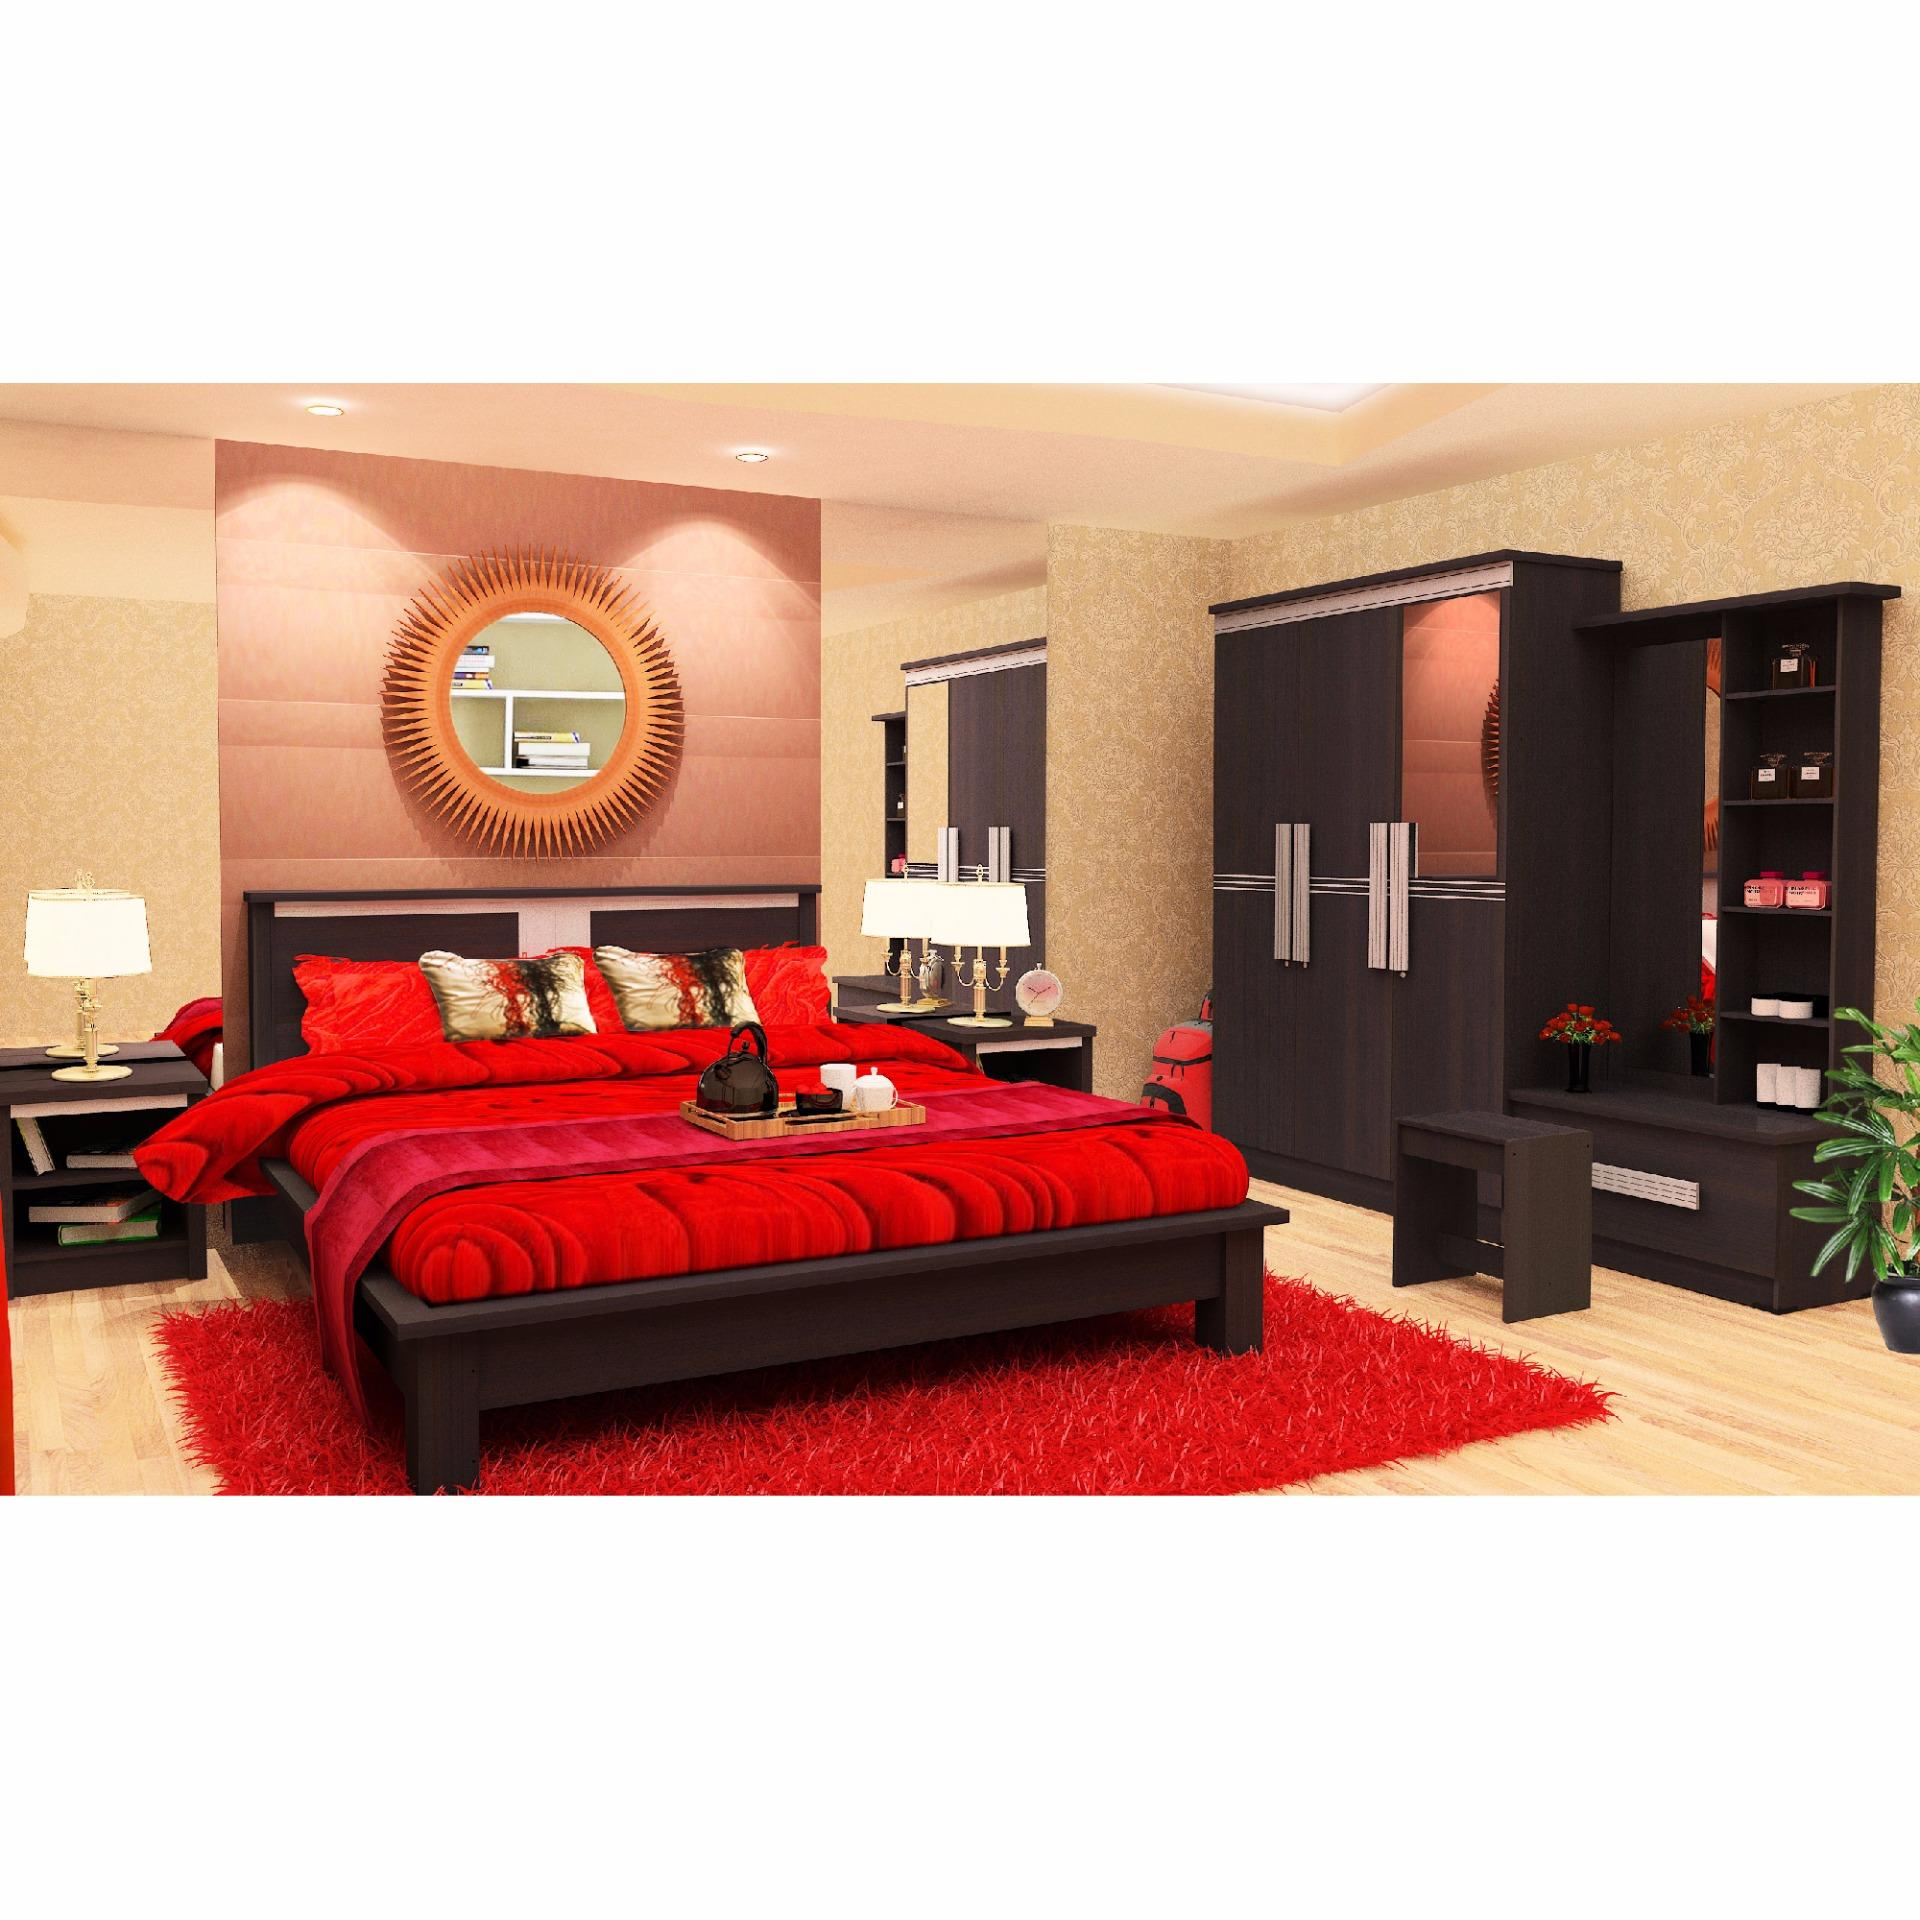 Murah Central 2in1 Deluxe Florida 120x200 Komplit Set Motif Sandaran Uniland Beauty Bed Zebra Cho 100x200 Jadebotabek Only Ranjang Nakas Meja Rias Bedroom Red